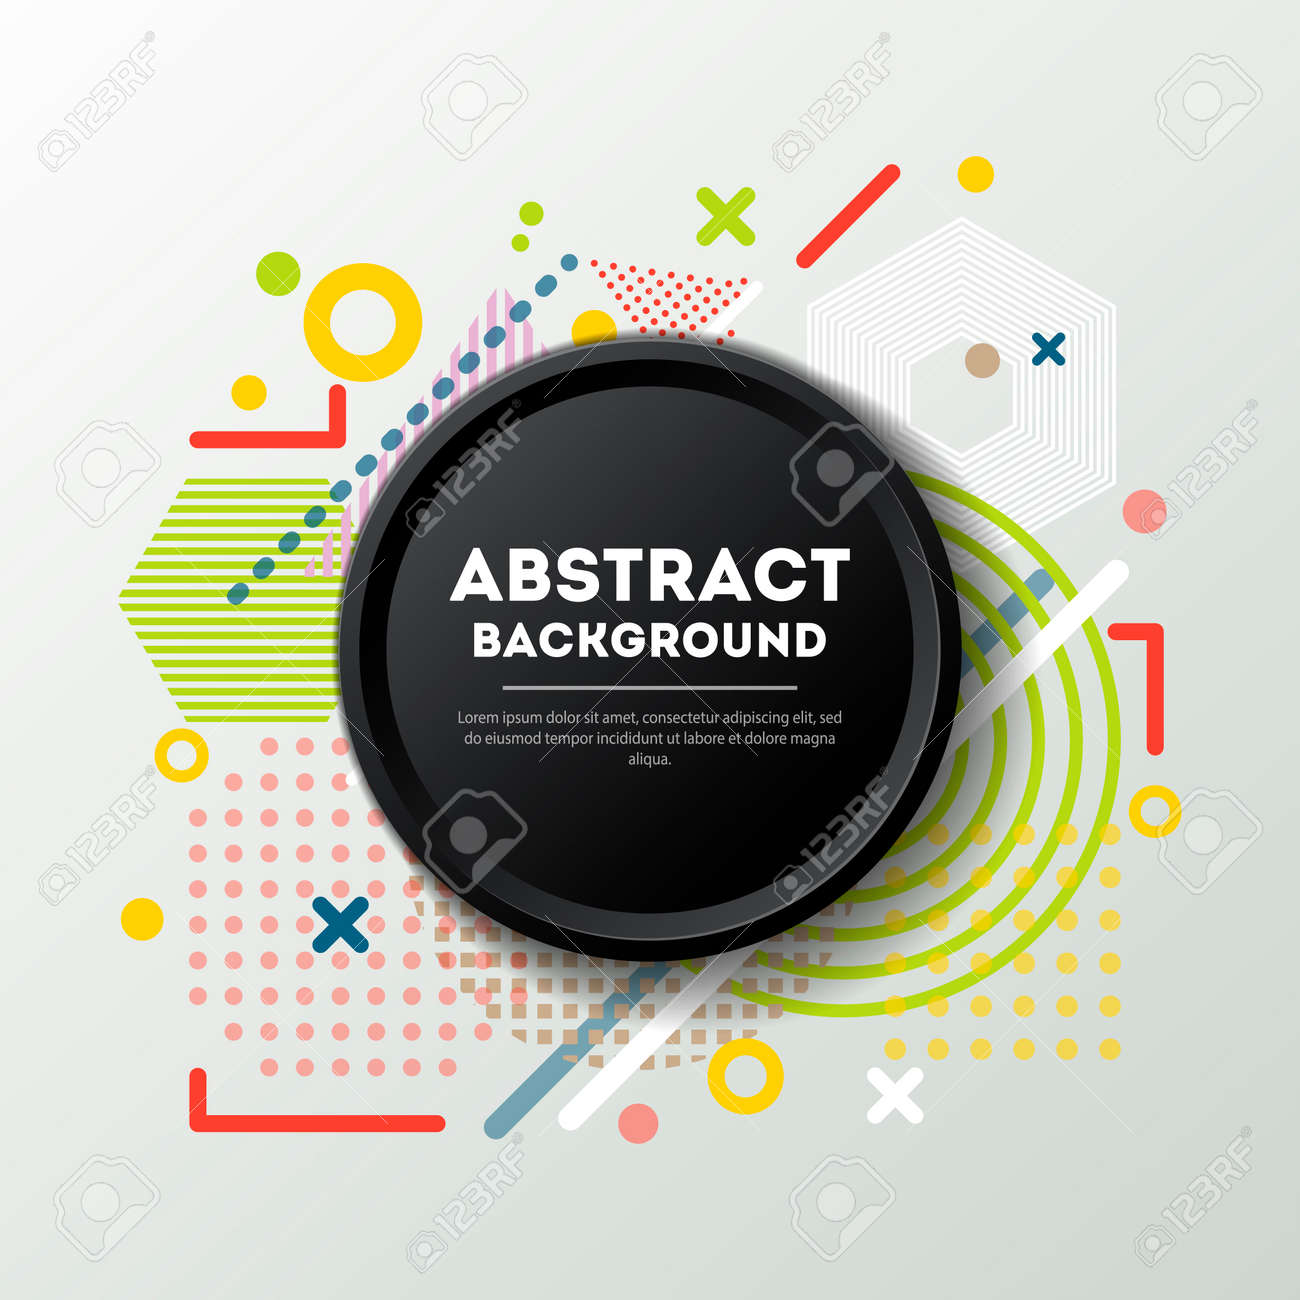 Abstract background in trendy linear style - 113332857